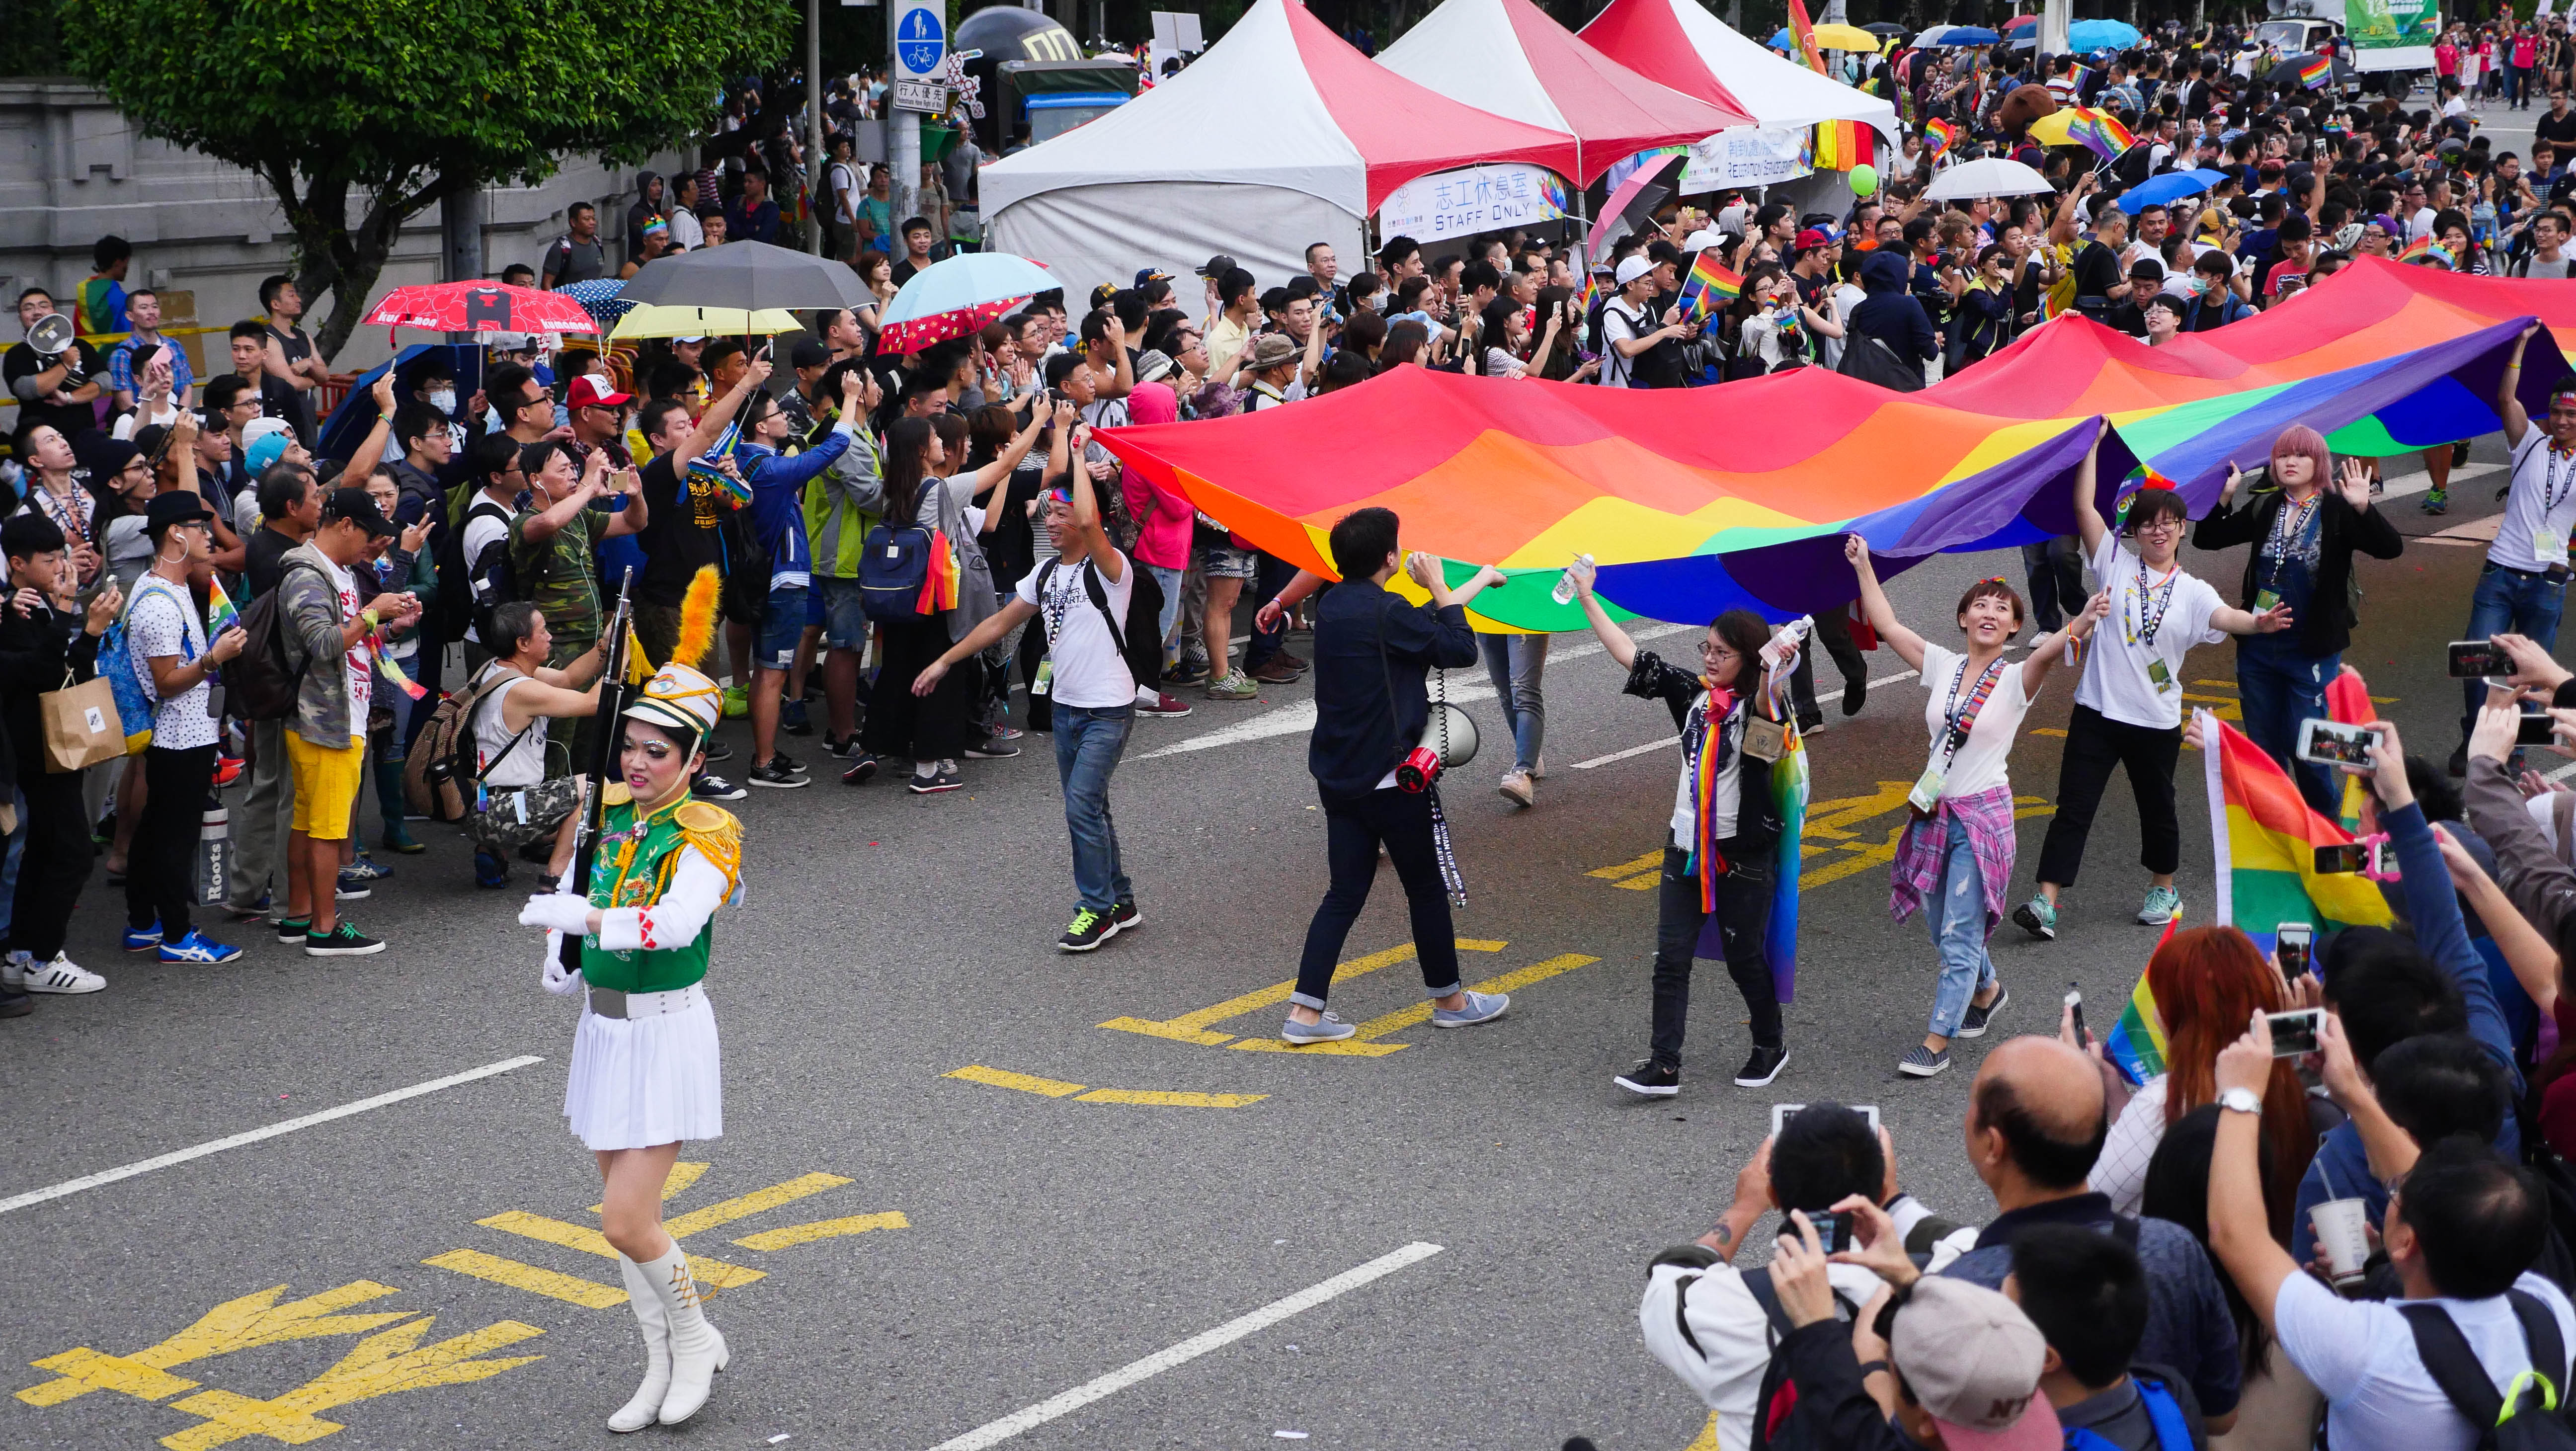 Taiwan Becomes First Asian Country to Legalise Same-Sex Marriage